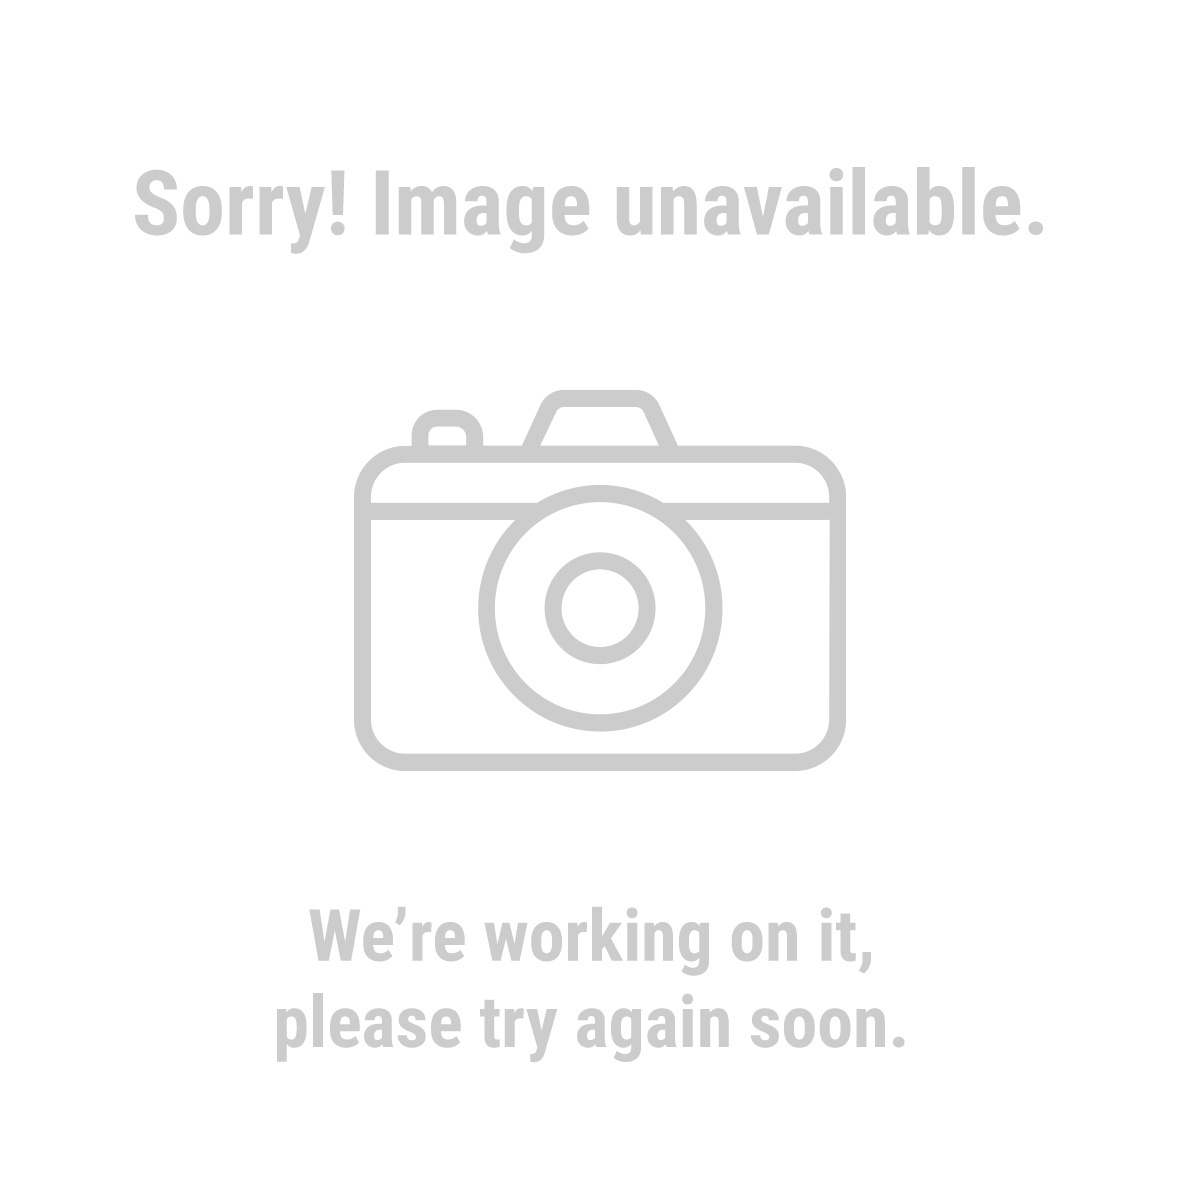 harbor freight hammer drill. harbor freight hercules cordless drill · sds variable sd pro rotary hammer kit